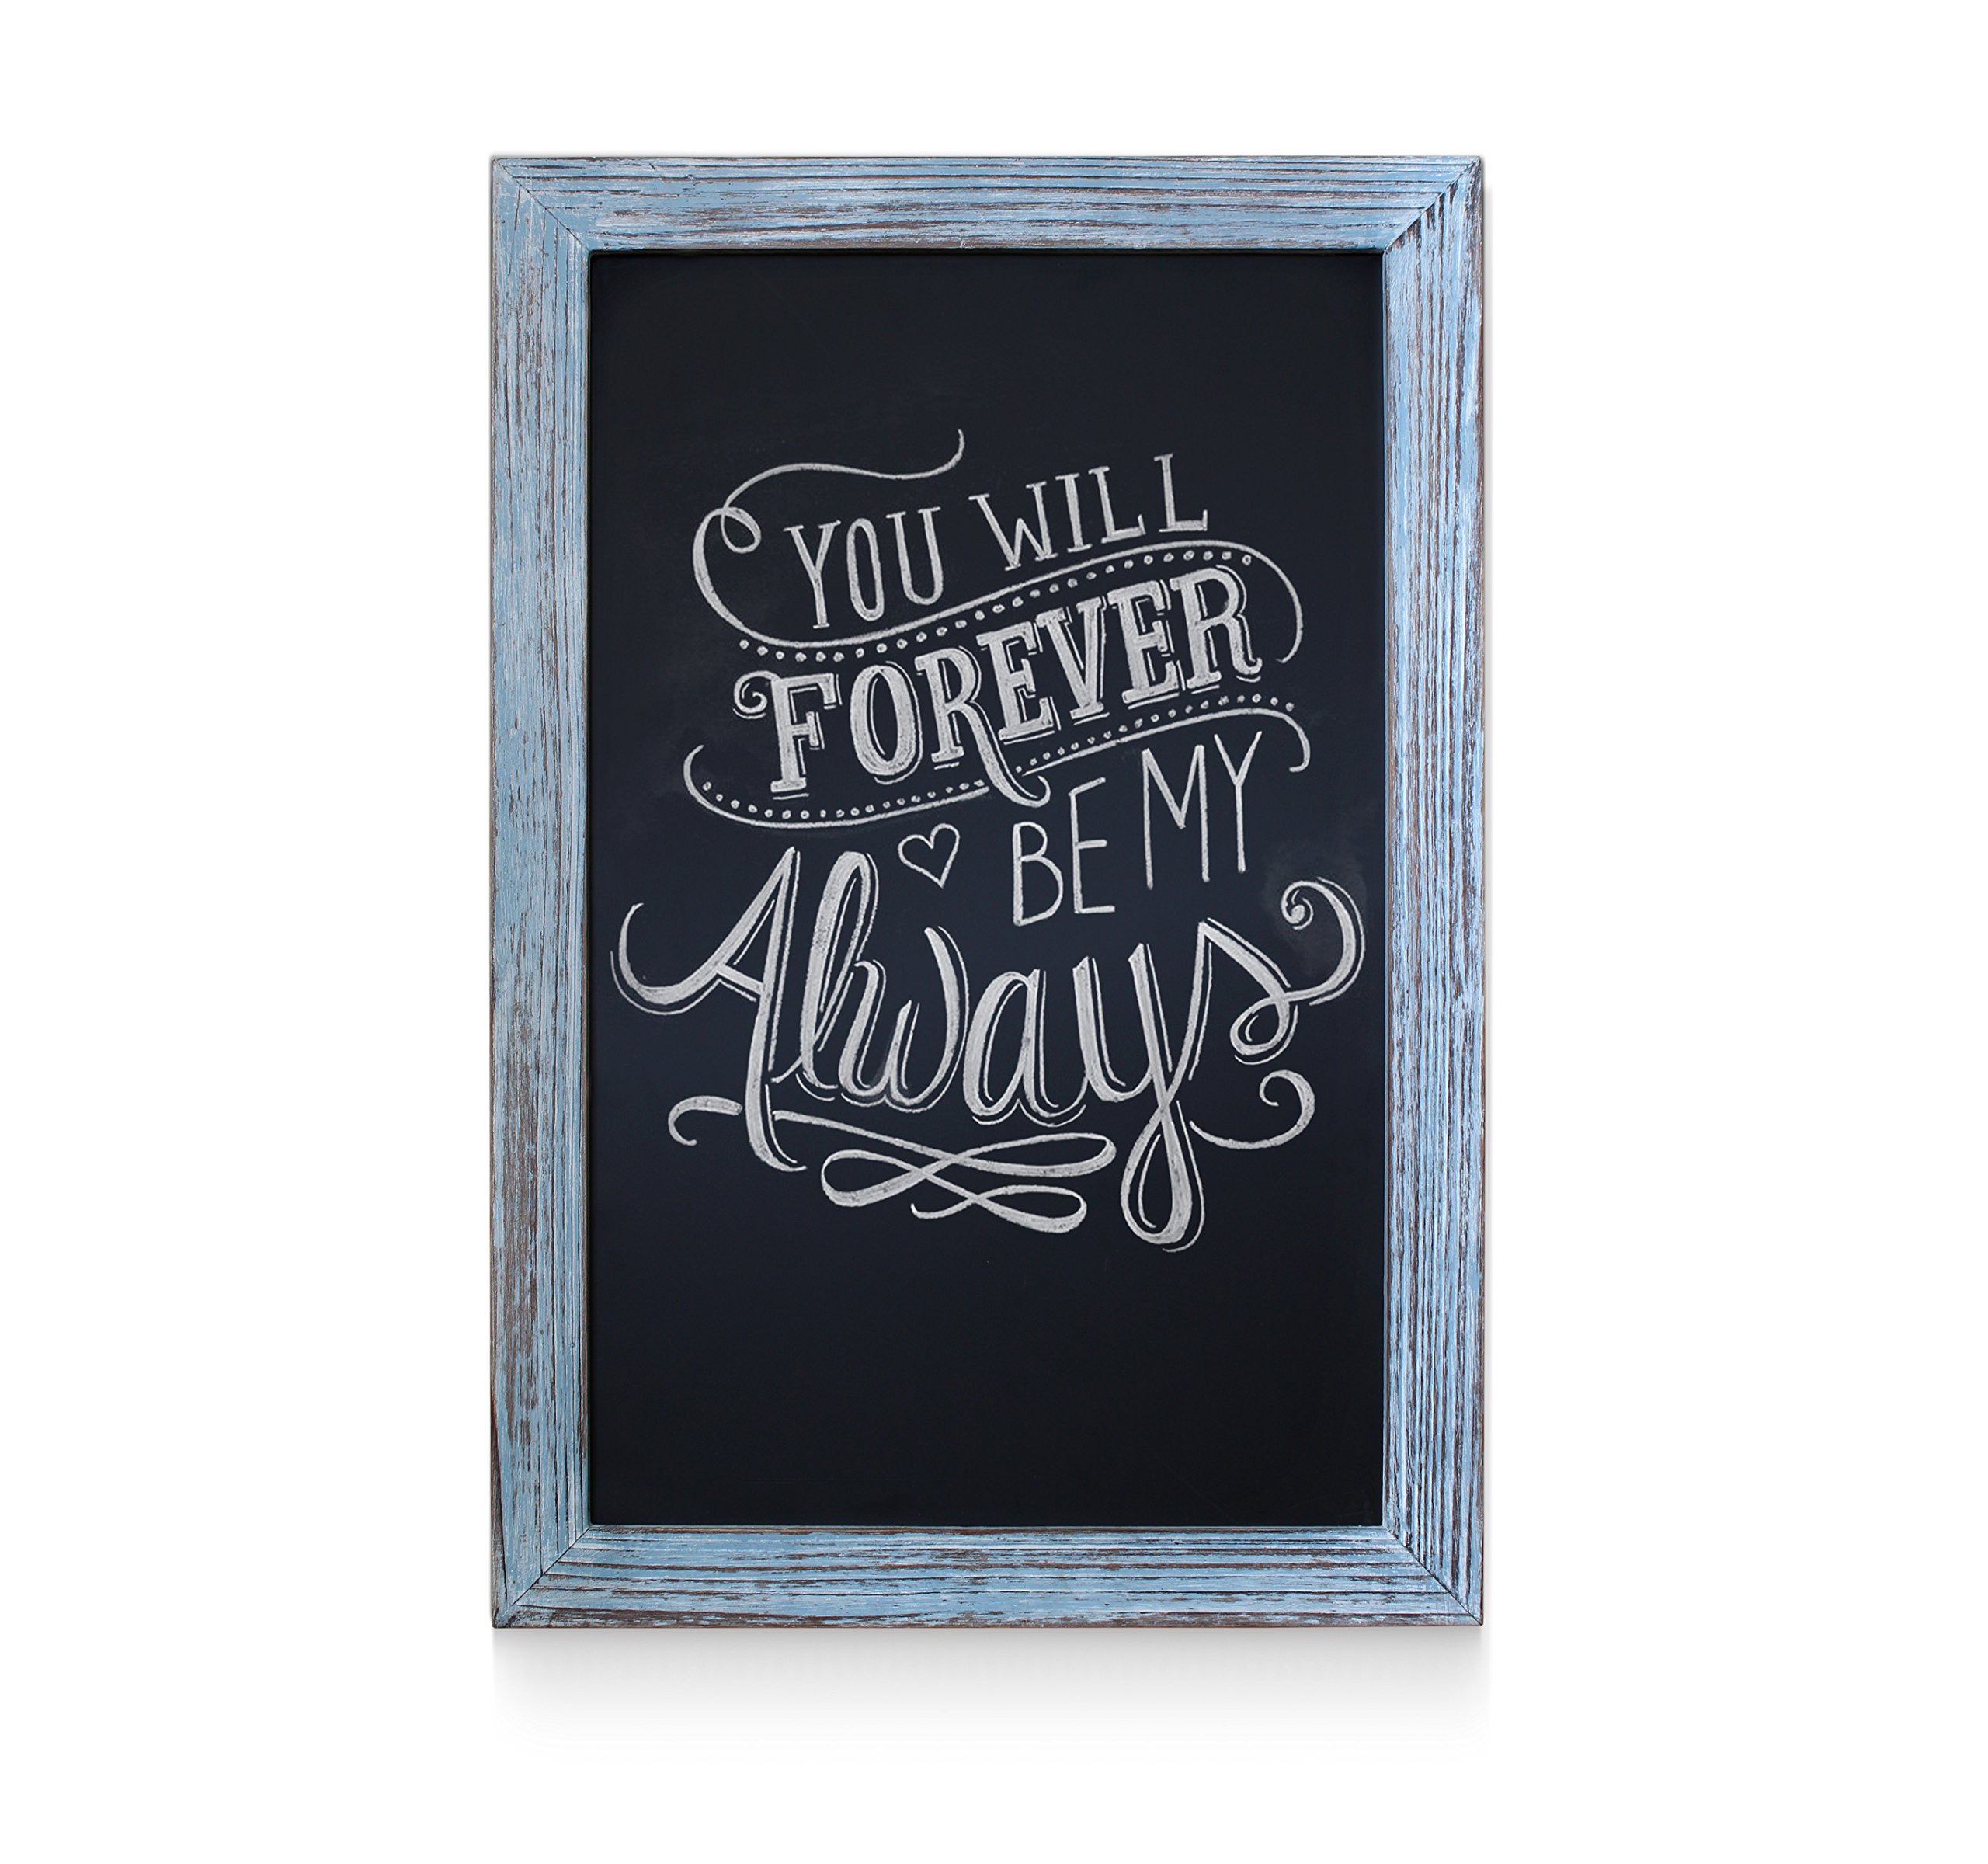 Rustic Blue Magnetic Wall Chalkboard, Extra Large Size 20'' x 30'', Framed Decorative Chalkboard - Great for Kitchen Decor, Weddings, Restaurant Menus and More! … (20''x30'')